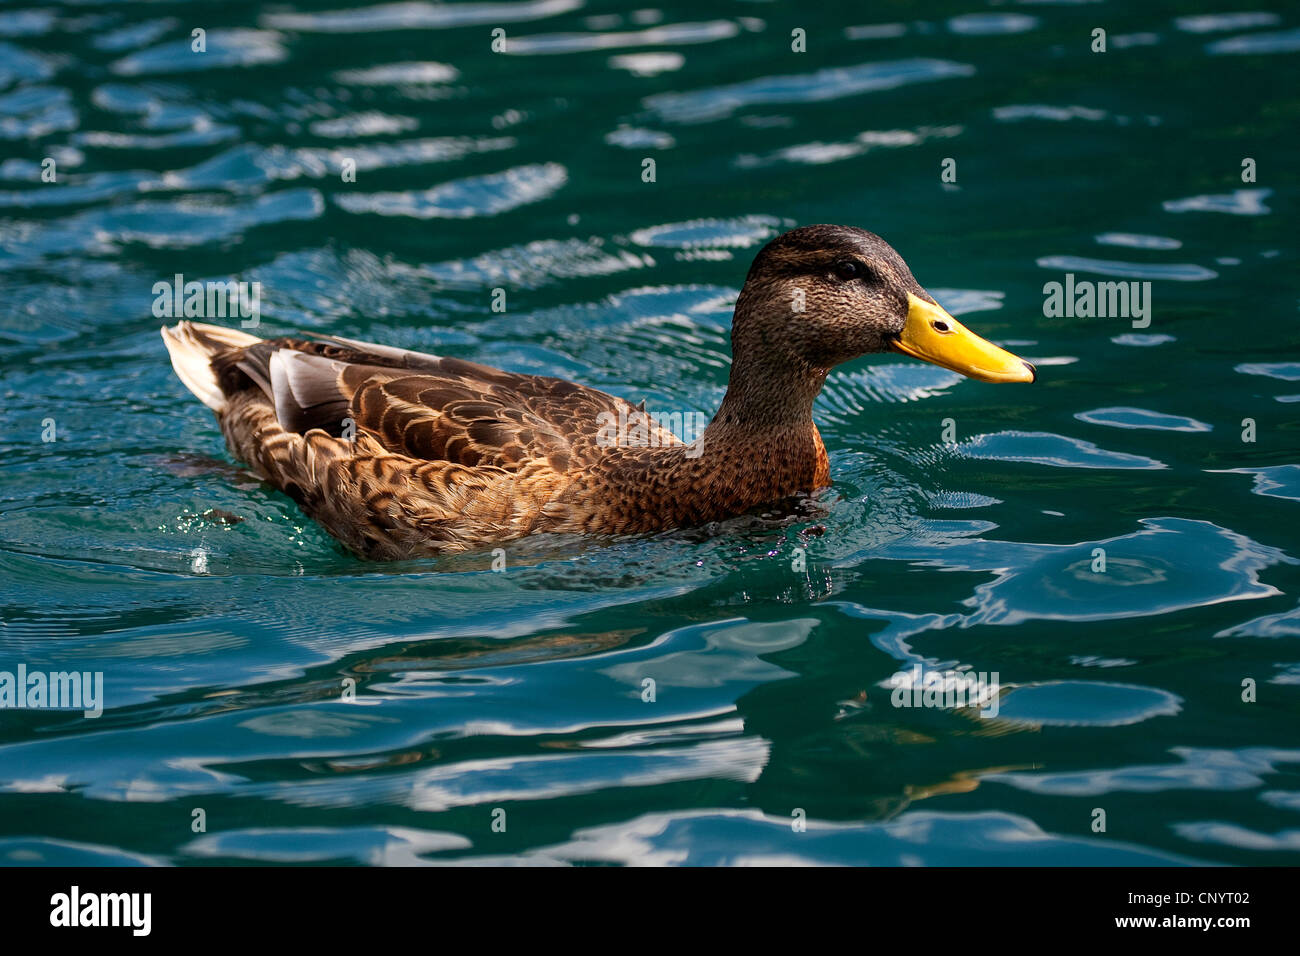 mallard (Anas platyrhynchos), male in eclipse plumage similar to a female, Germany - Stock Image